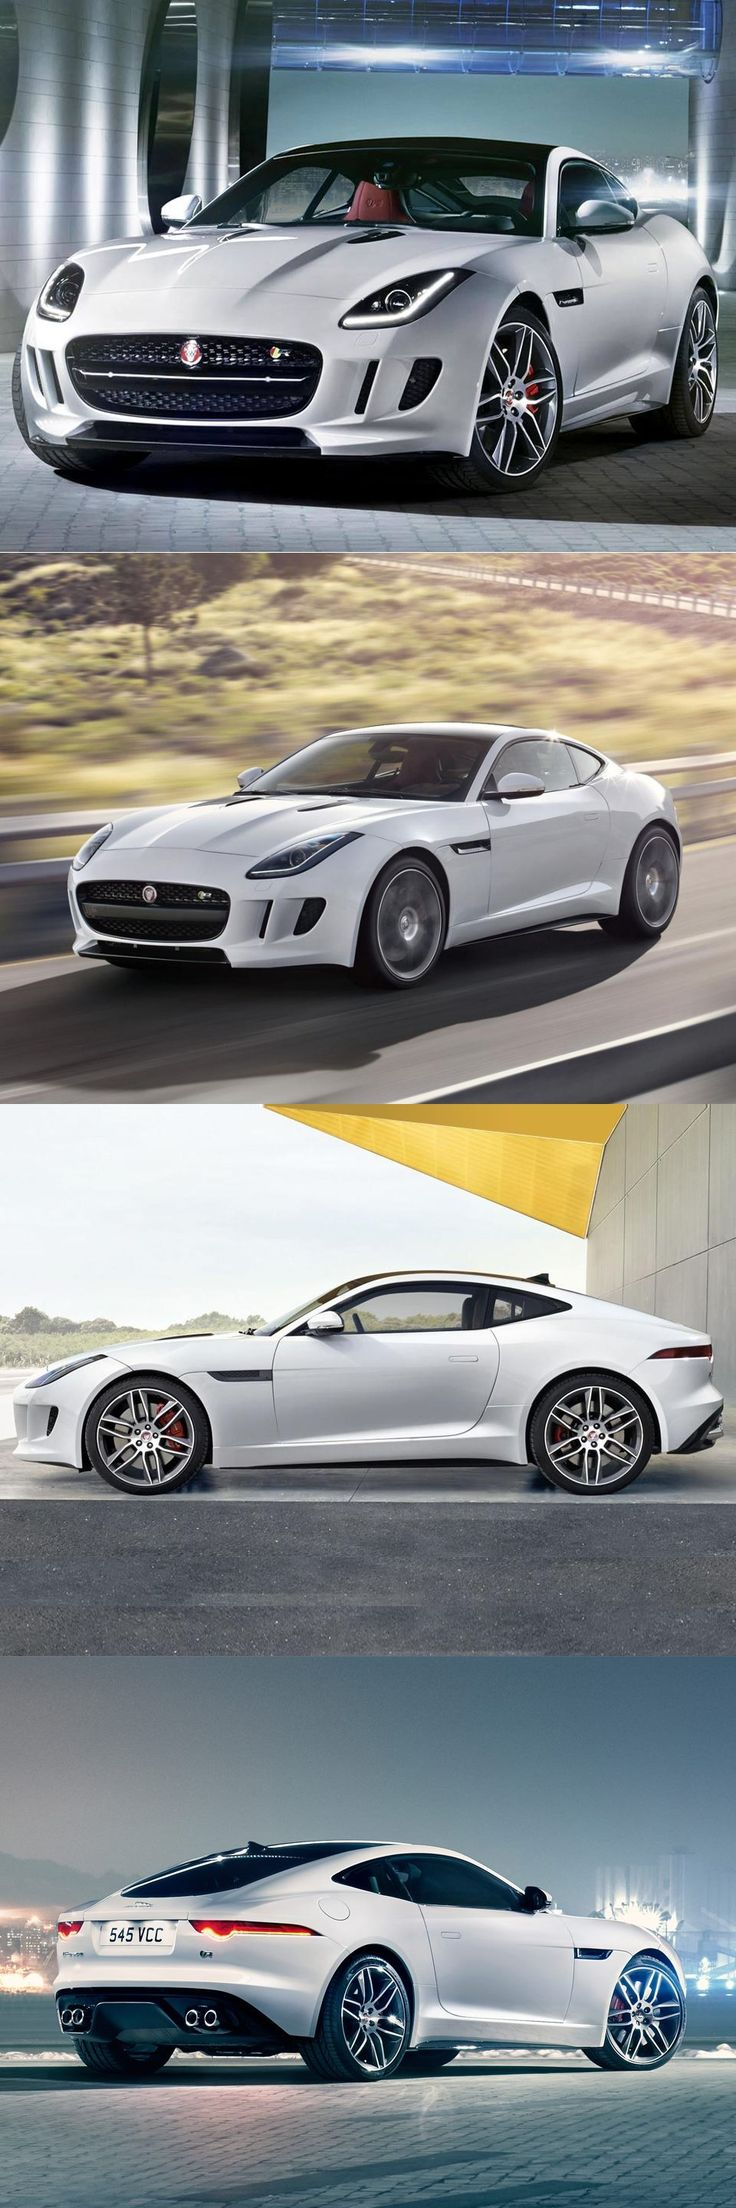 Jaguar F-Type: Read Specs, Variants, Details with Price